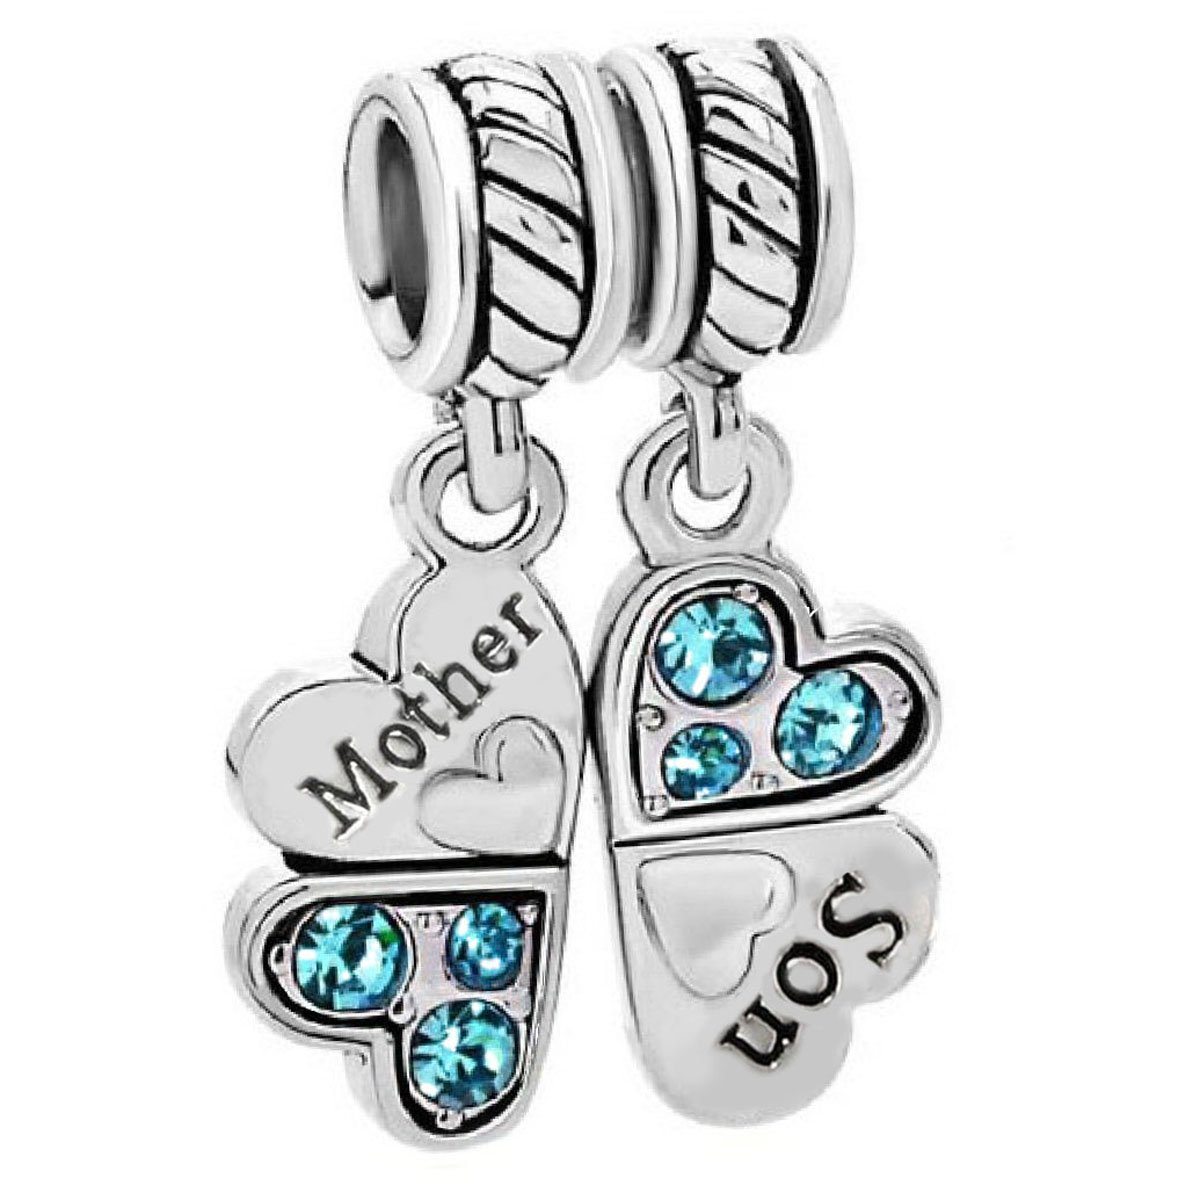 Sterling Silver Rhinestone 'Mother Son Love' Heart European Bead Charm by Queenberry (Image #1)